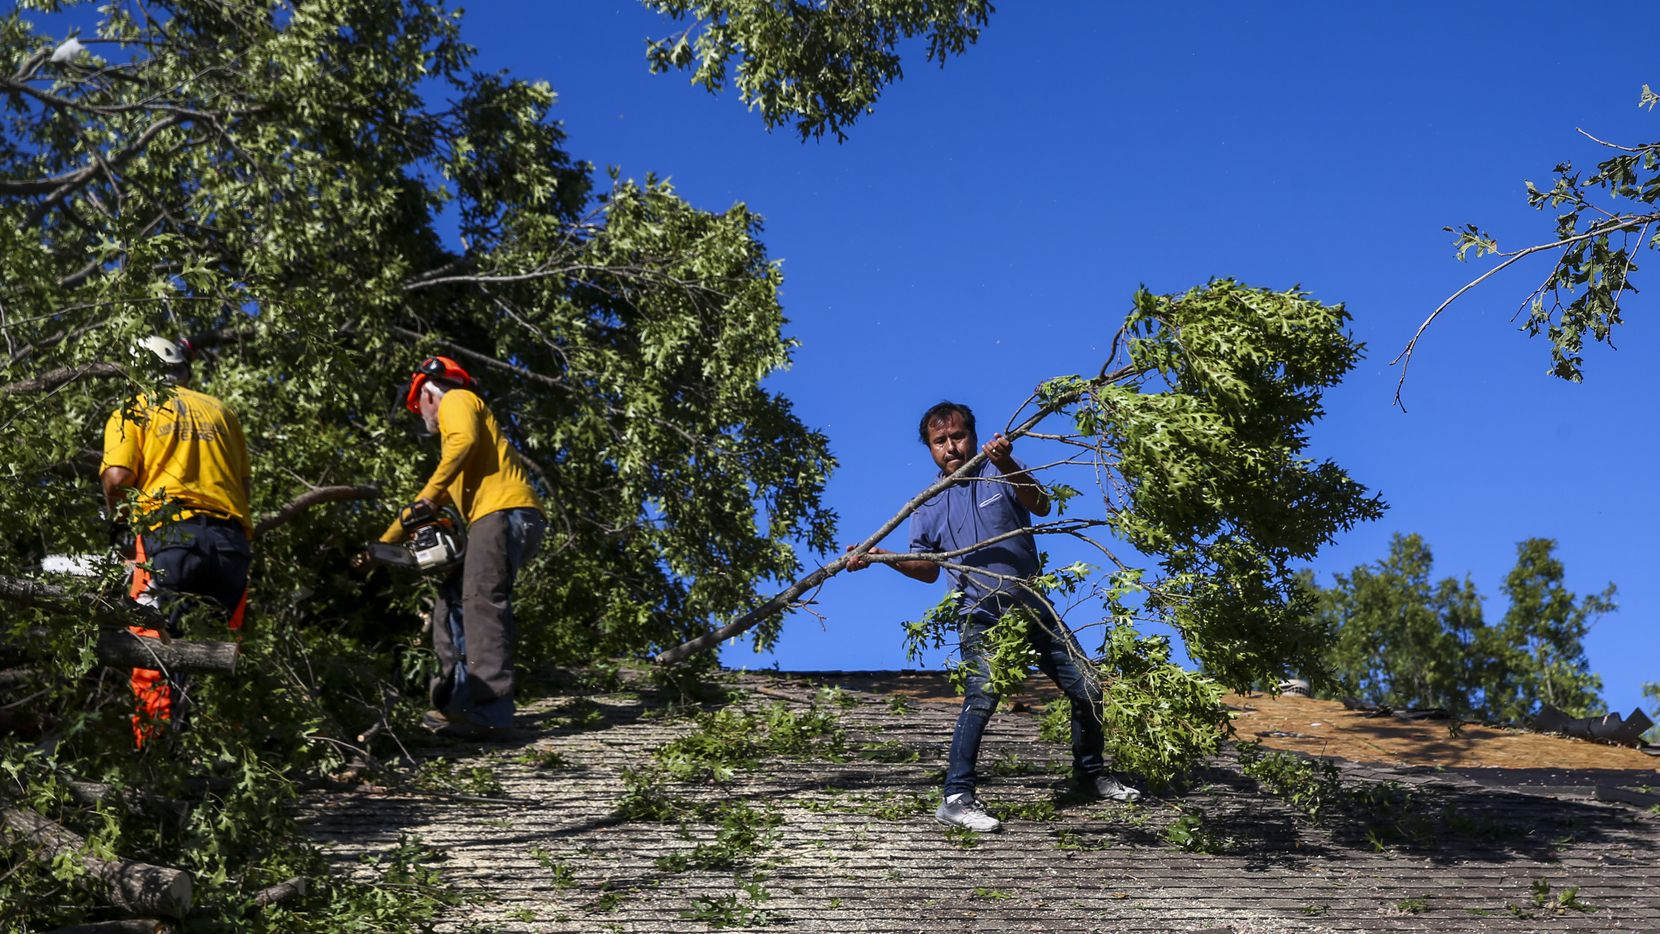 This file photo shows members of Texas Baptist Men and Islamic Relief USA clear tornado debris on Monday, October 21, 2019 in Richardson, Texas.